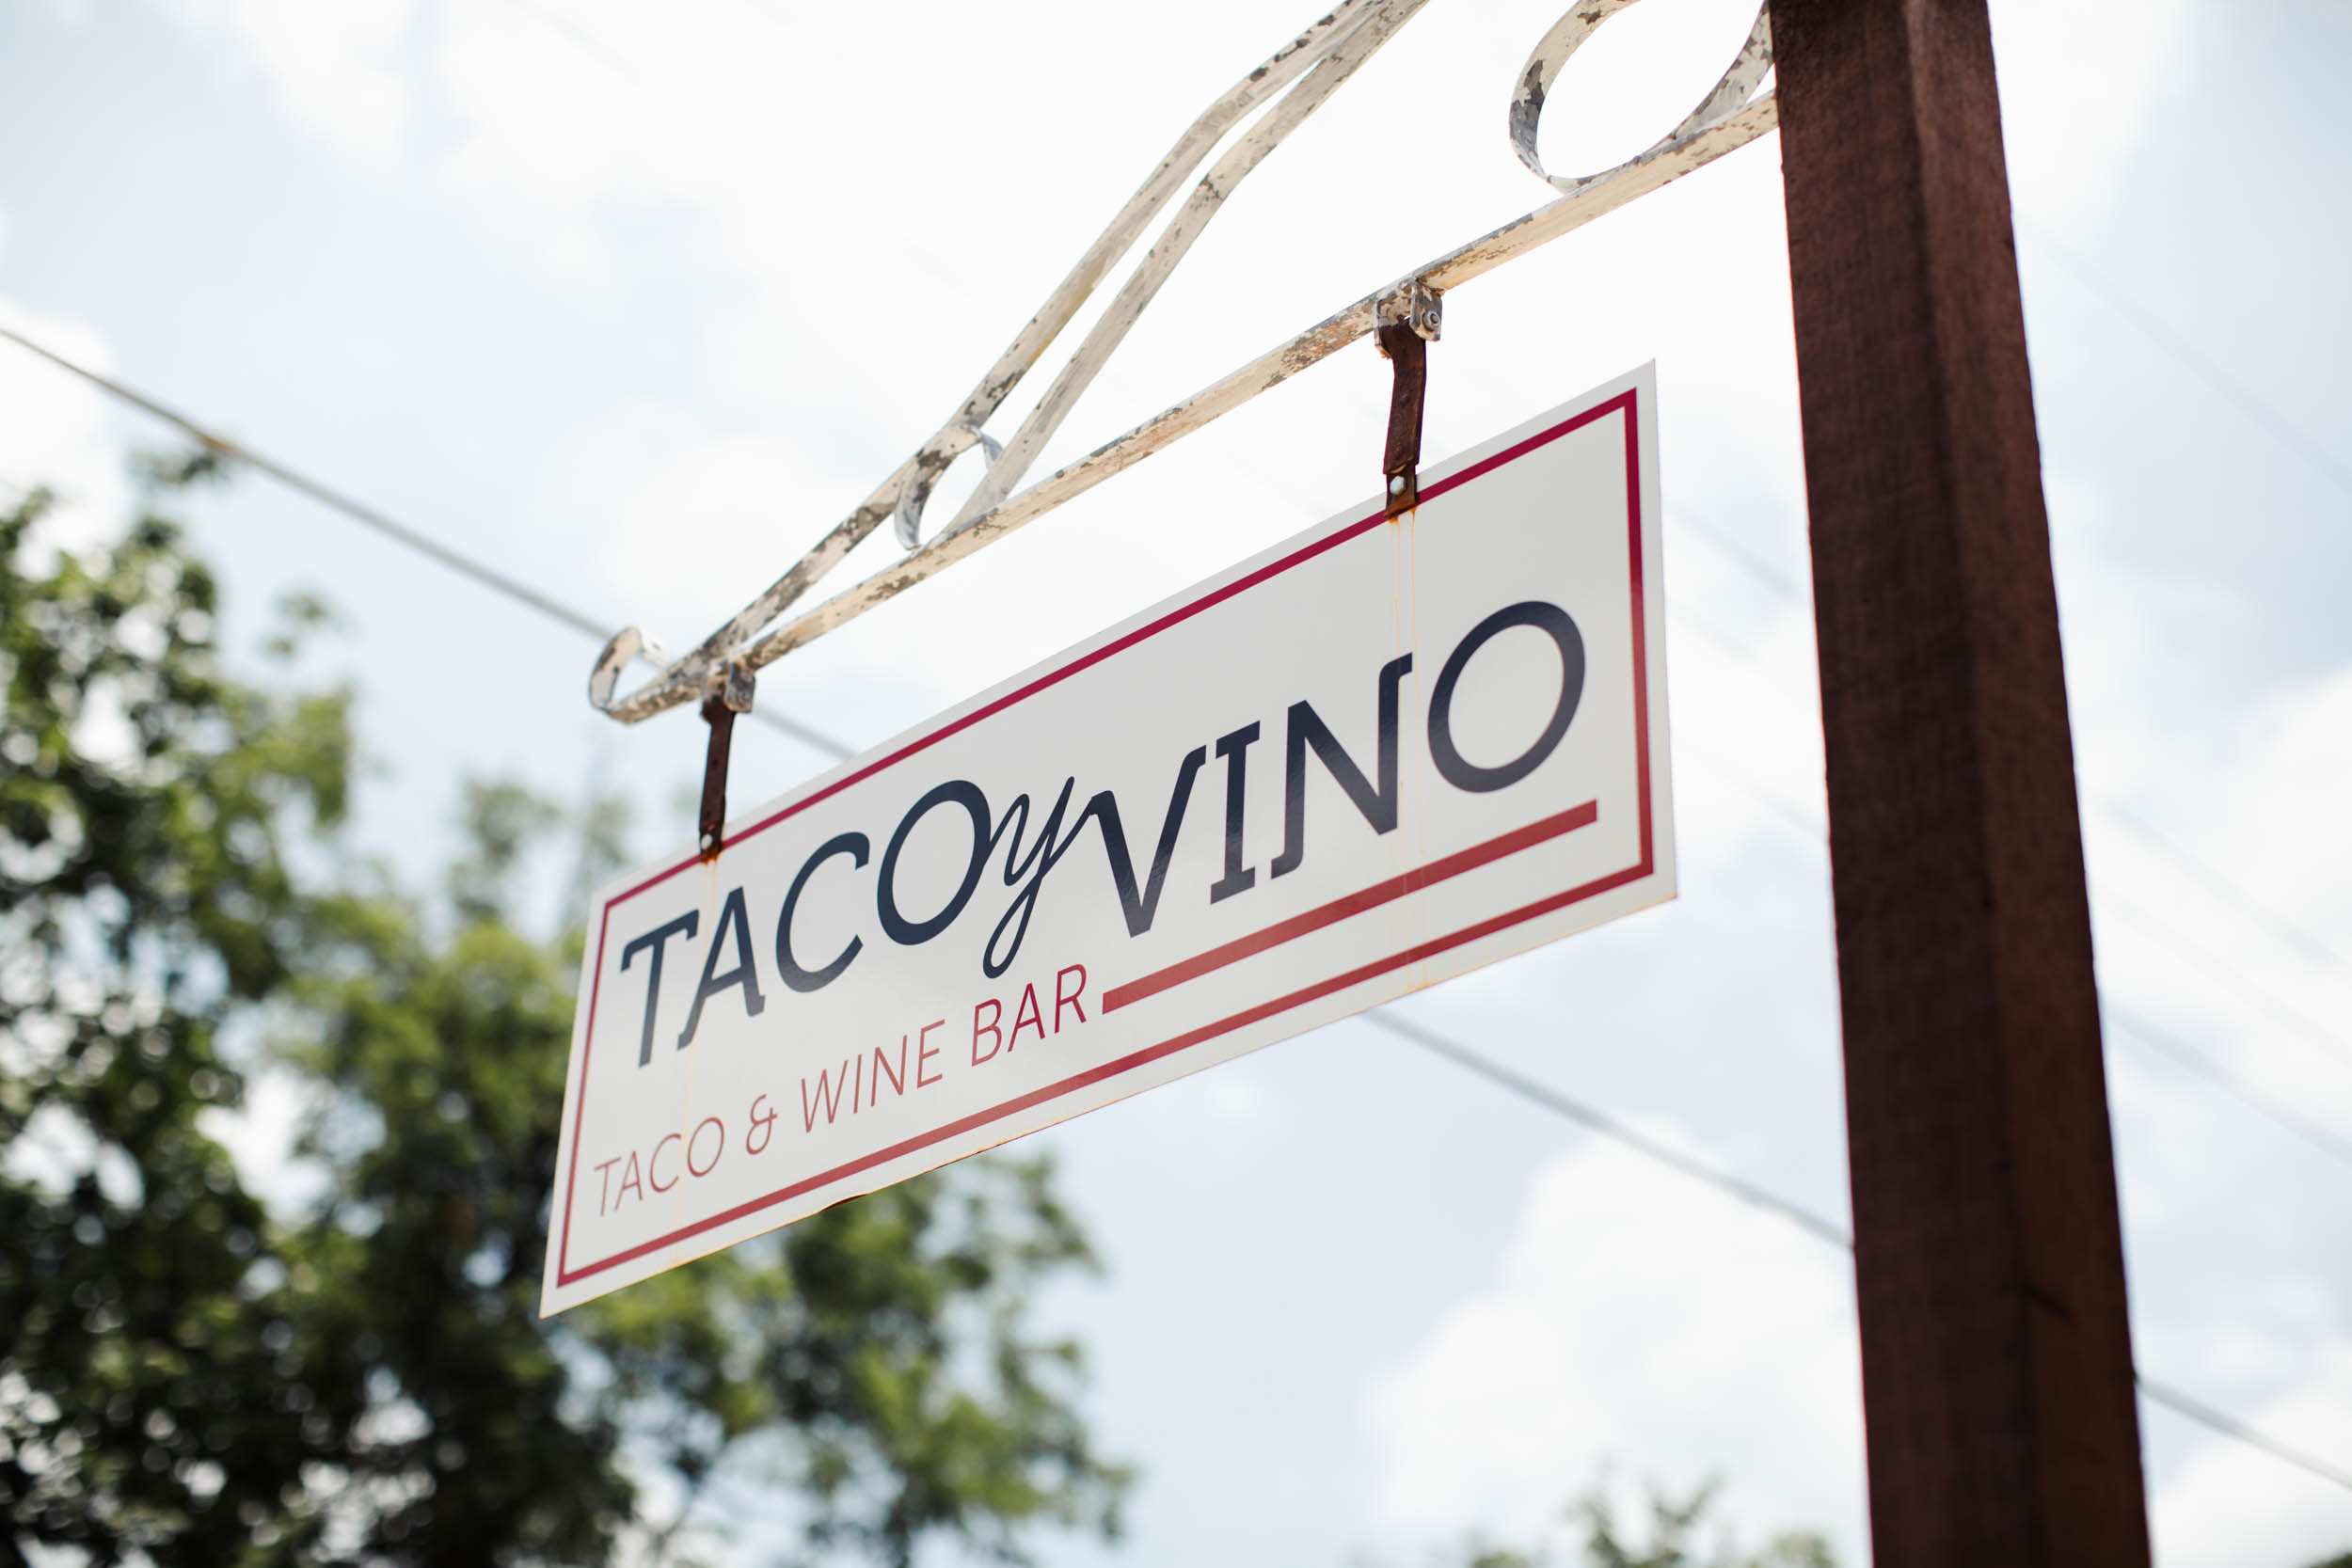 Pre-event Pickup - Get your wine glasses and tokens early!When: Saturday, July 13 from 2:00 p.m. - 6:00 p.m.Where: Taco y Vino, 213 W. Eighth St.We'll be inside and ready to admit you. Please note: You will still need to get your ID checked at the event, before receiving a wristband Thank you!